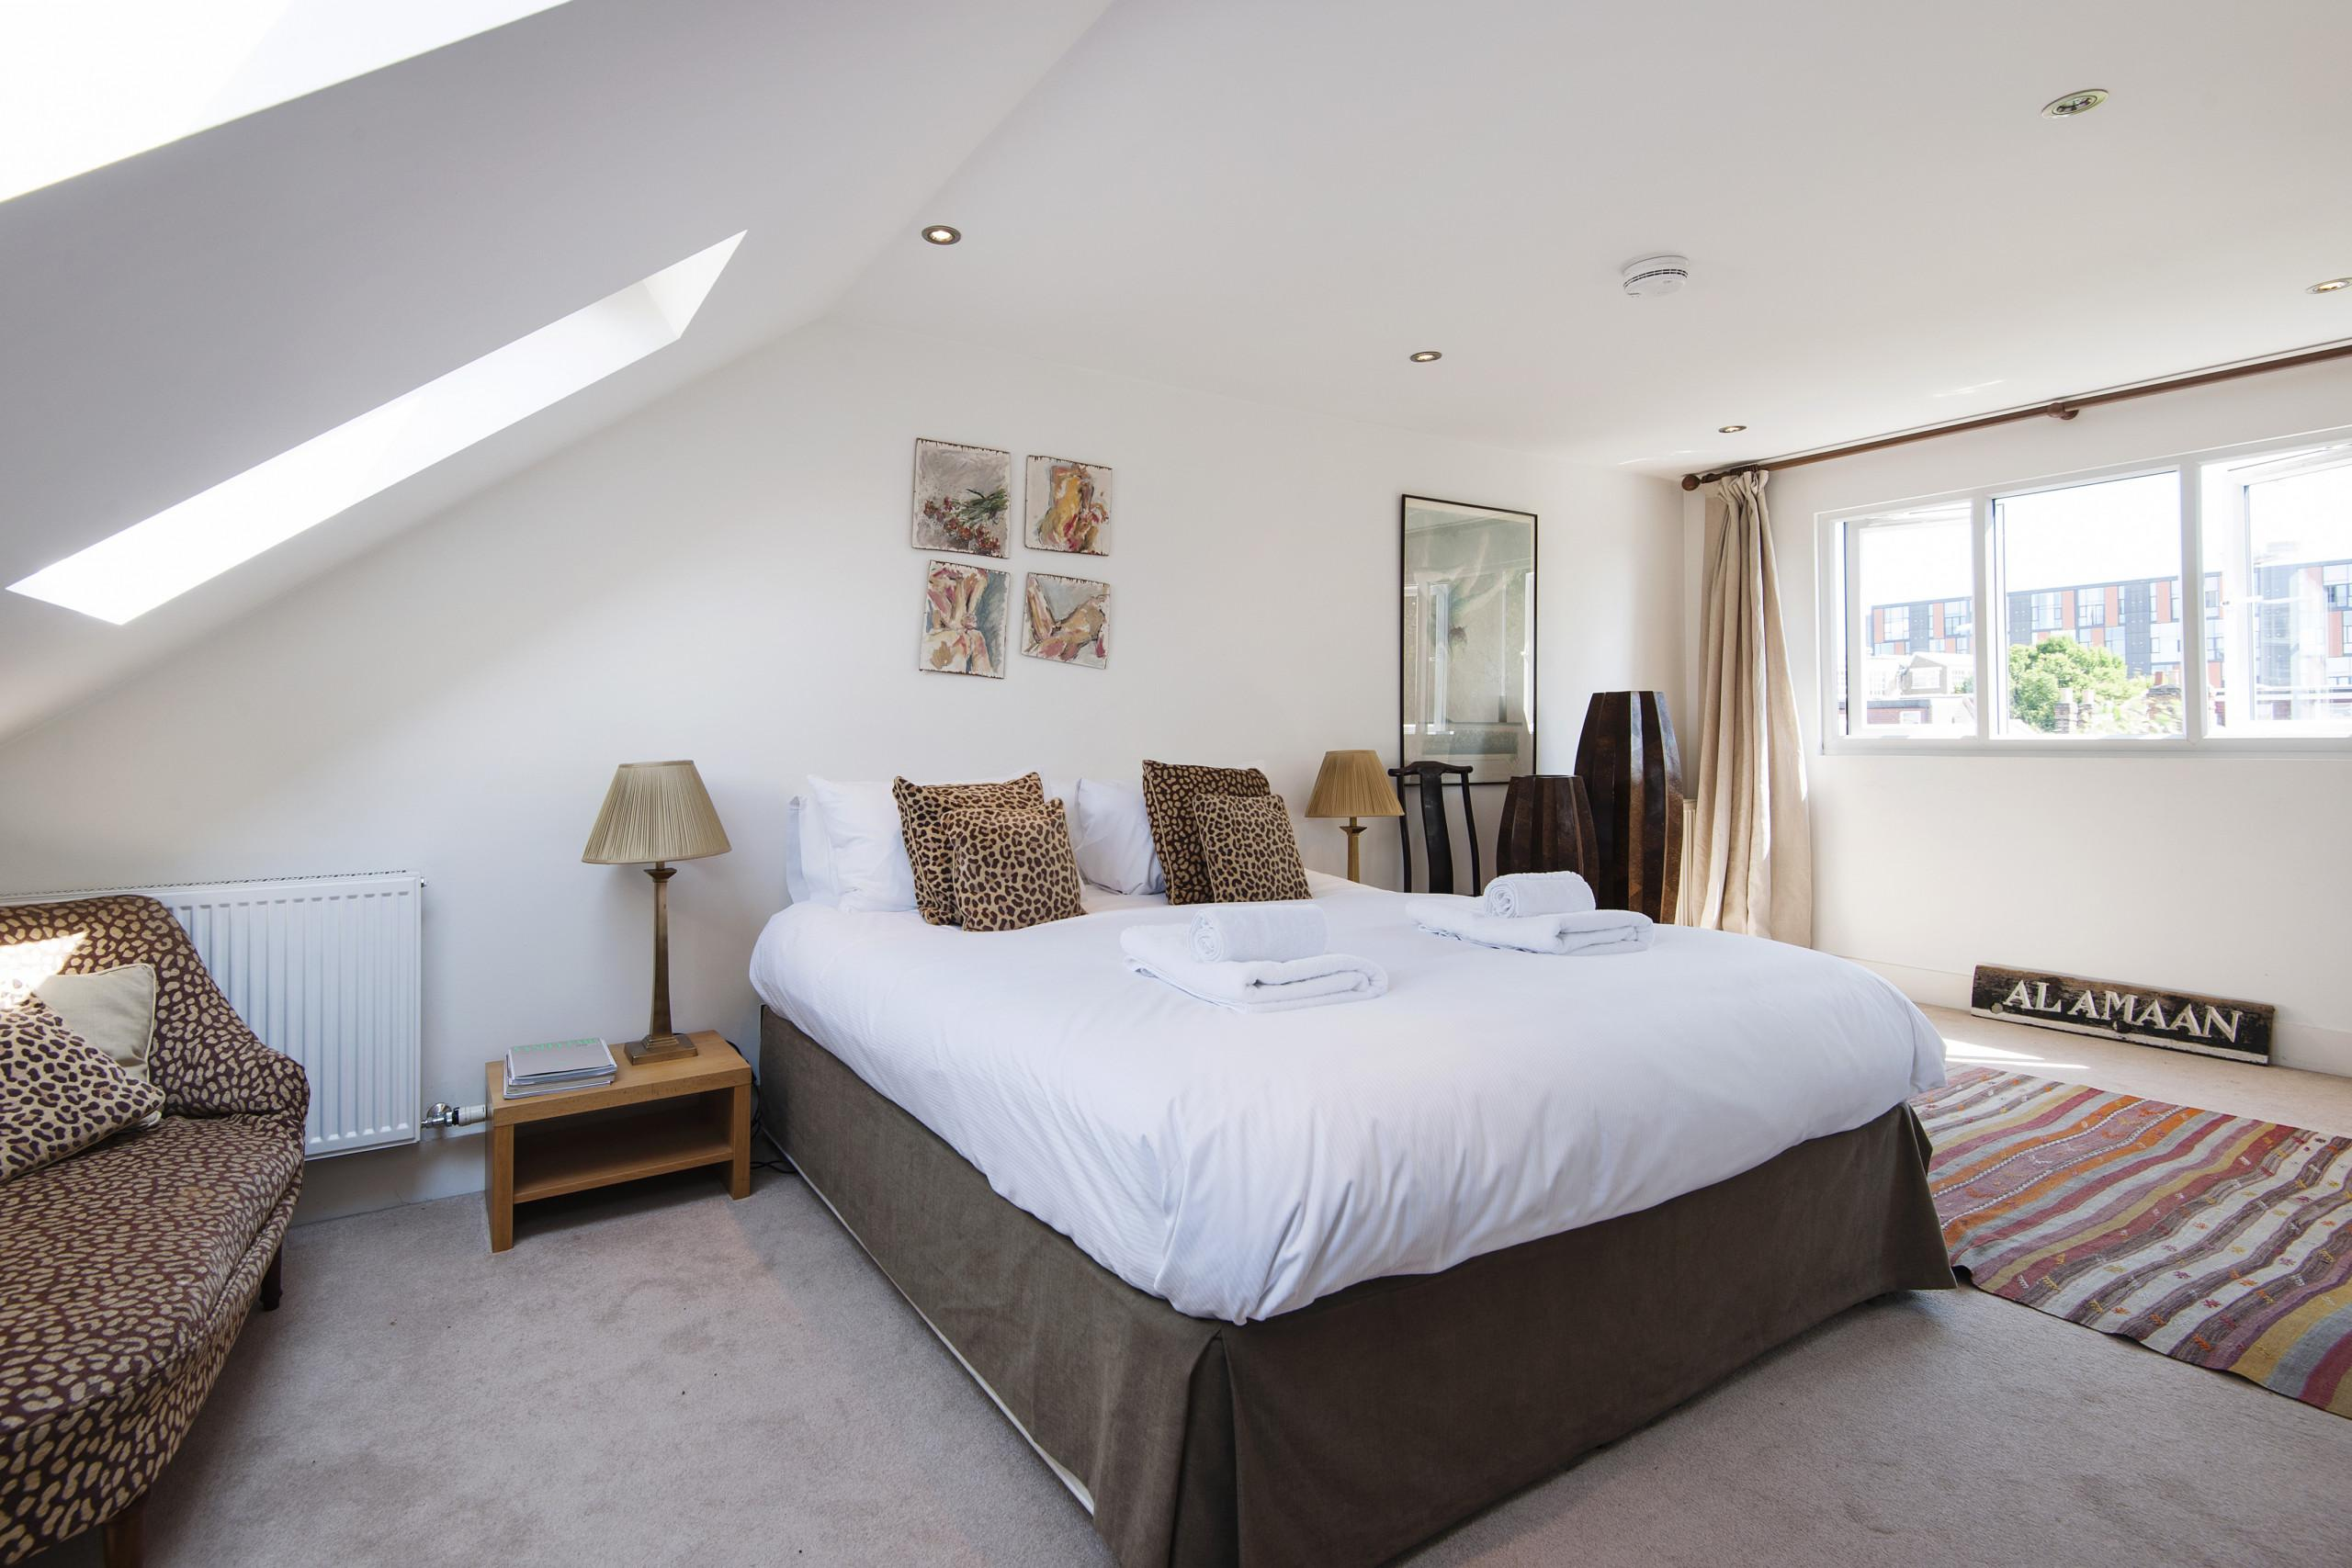 Property Image 2 - Exquisite East Acton Home close to Shepherds Bush